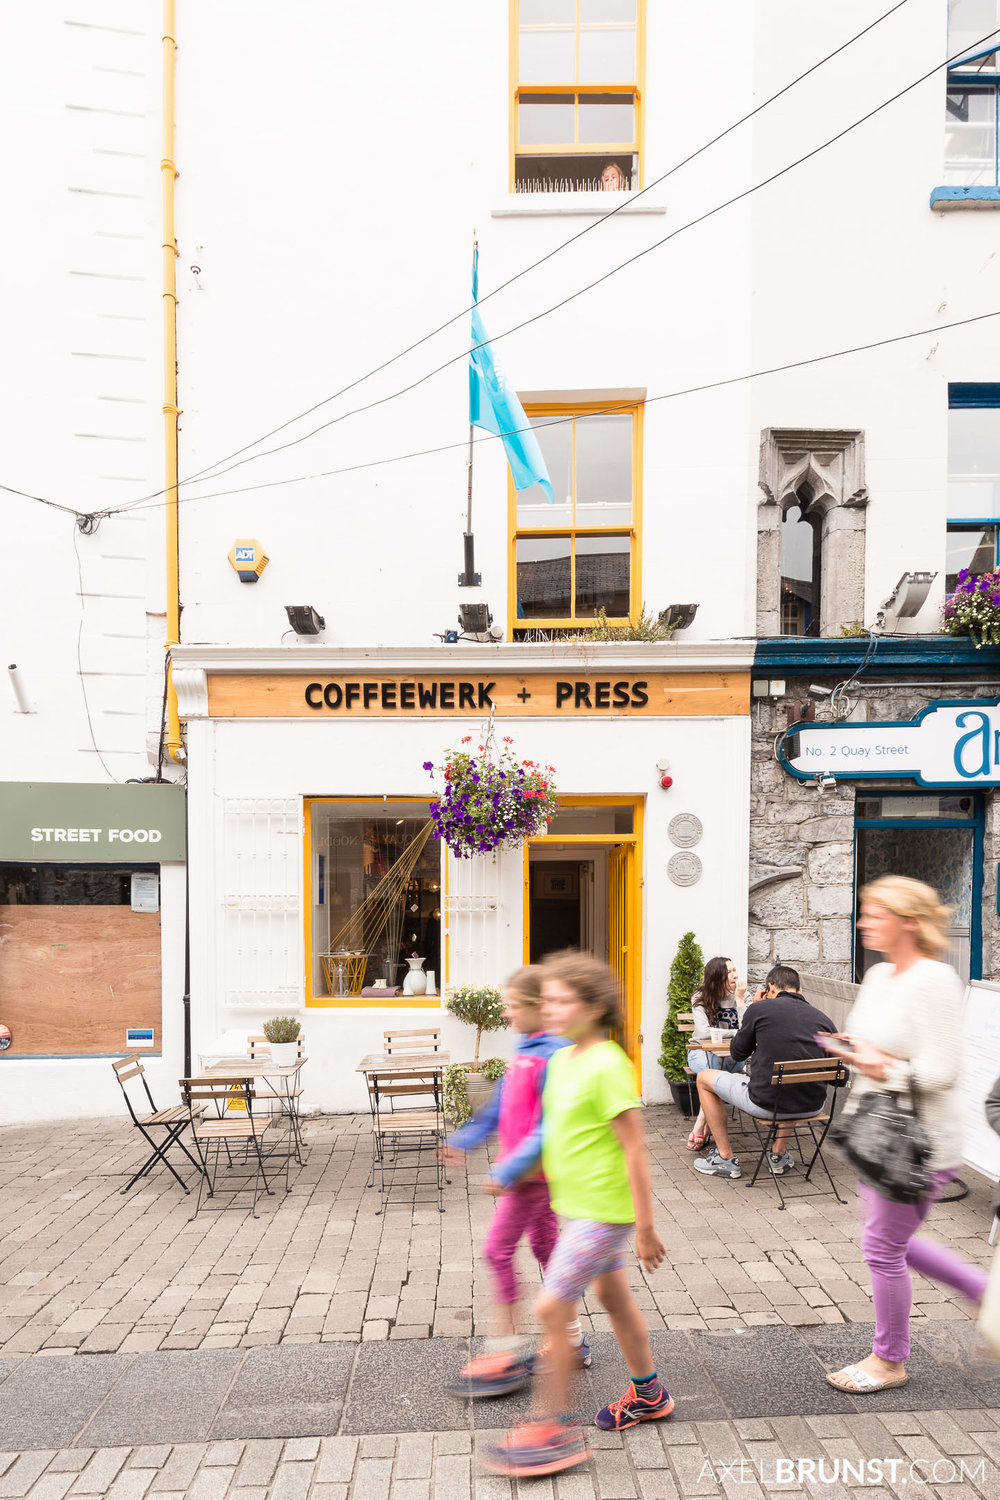 Coffeewerk+Press-Gallway-Ireland-6.jpg